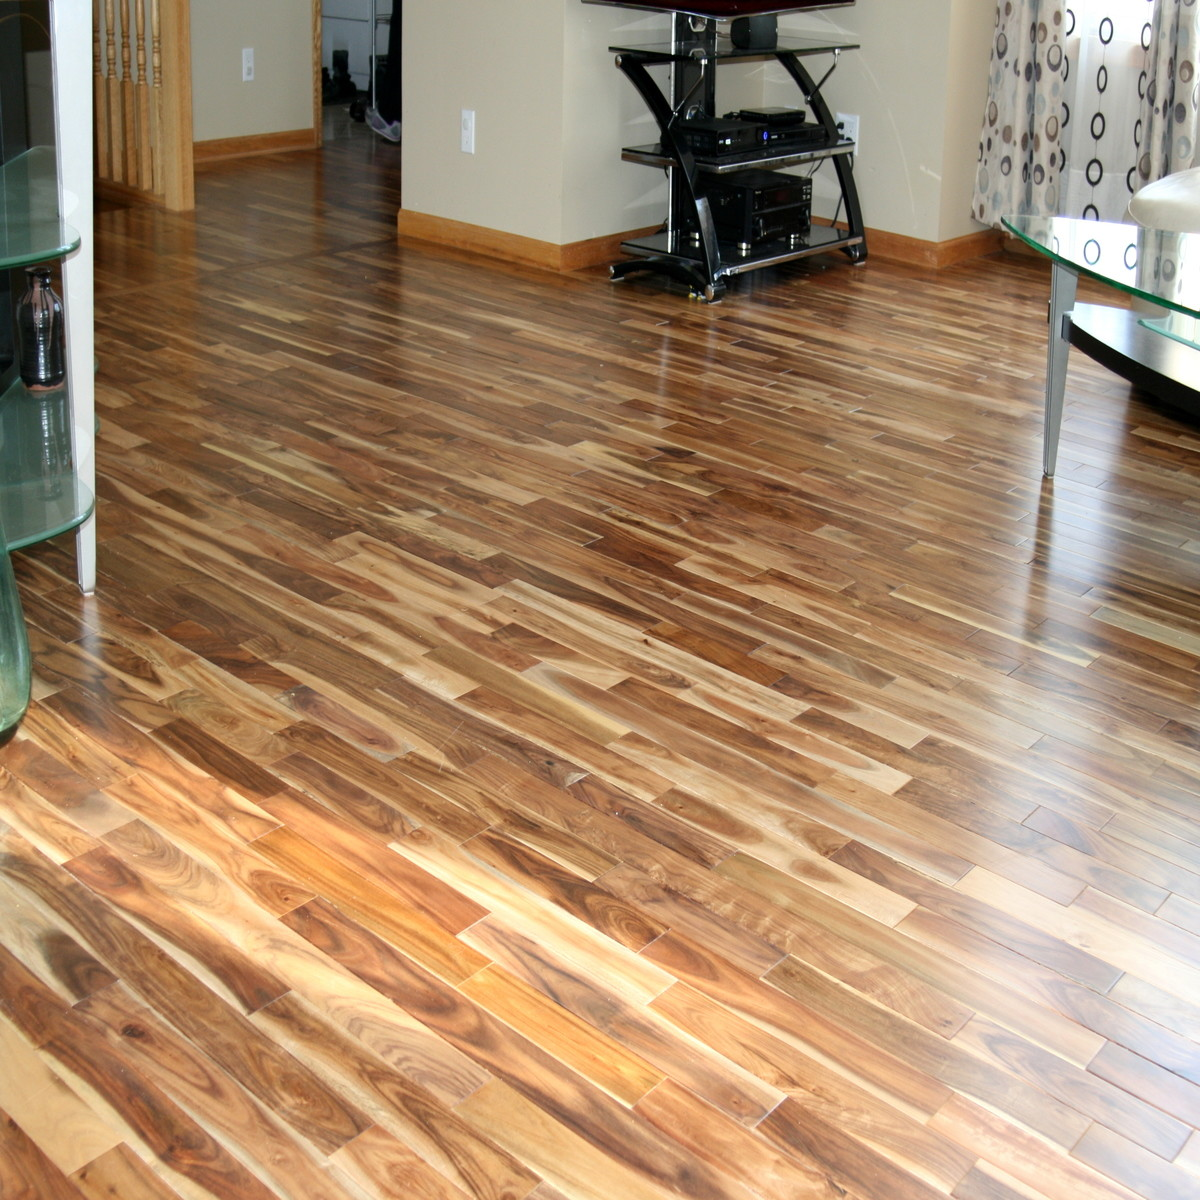 Wood Floor Colors Hardwood Floors And Wood Flooring: Acacia Blonde Hardwood Flooring